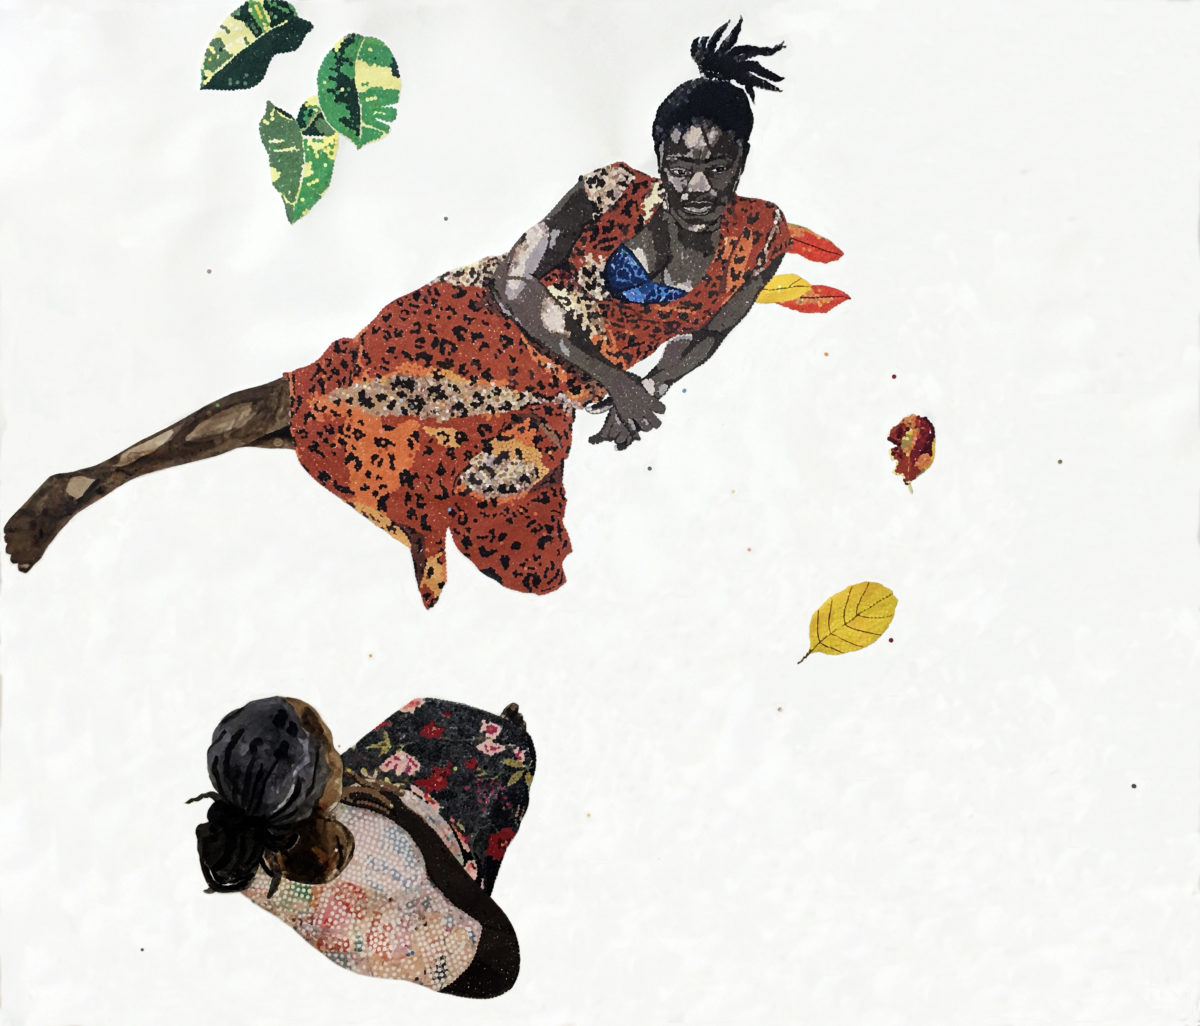 Ngozi Schommers, In and out of morphine, hallucinations and dead leaves, 2020. Courtesy the artist